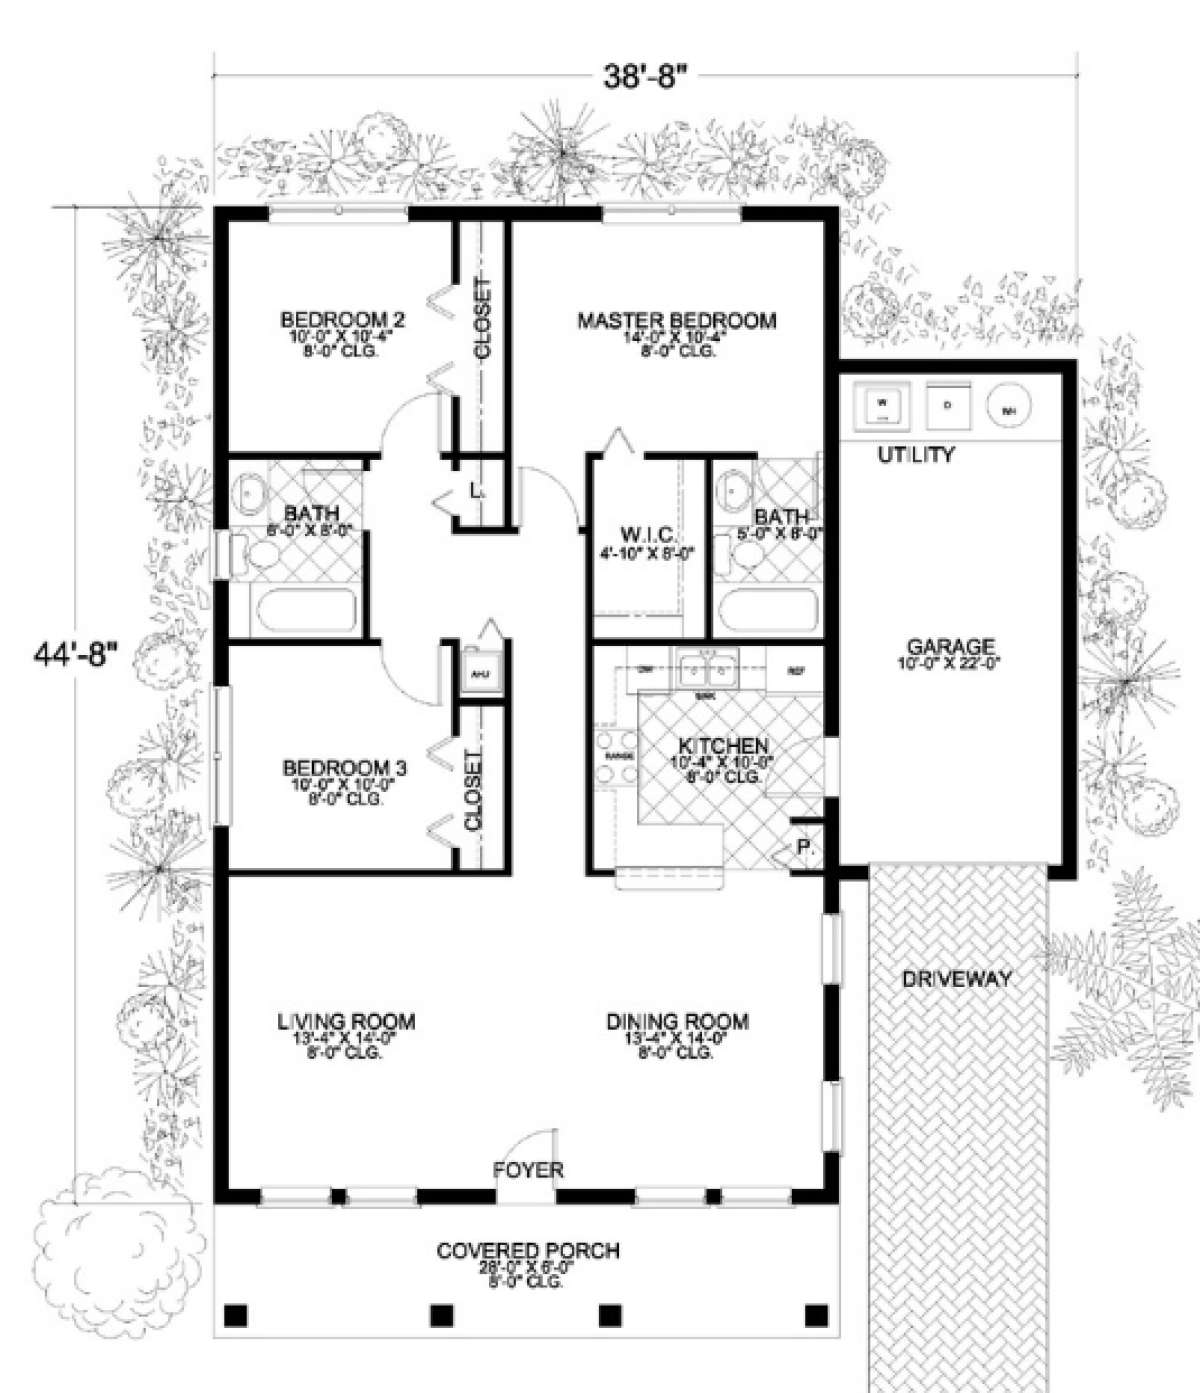 House Plan 168-00003 - Ranch Plan: 1,250 Square Feet, 3 Bedrooms, 2 on